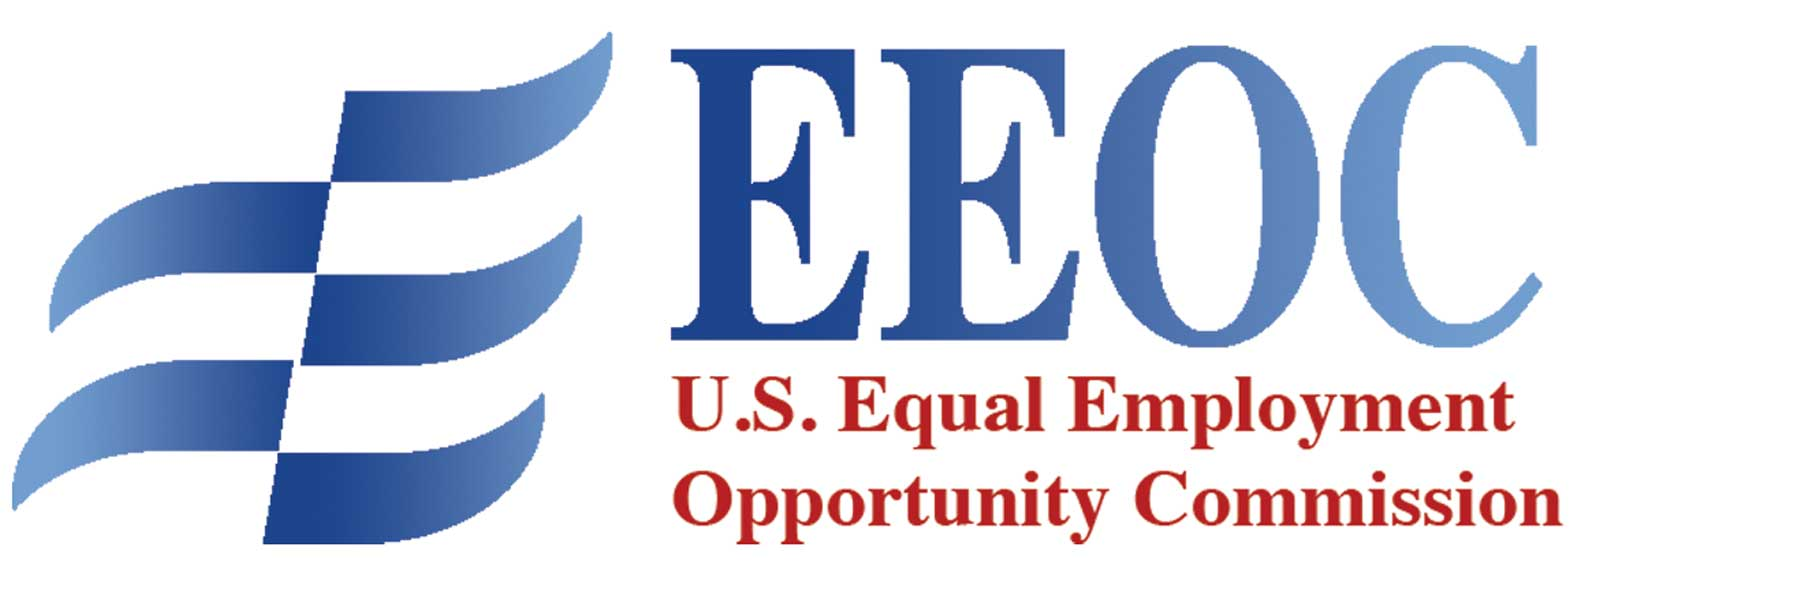 the equal employment opportunity and employee Equal employment opportunity is the law private employers, state and local governments, educational institutions, employment agencies & labor organizations.